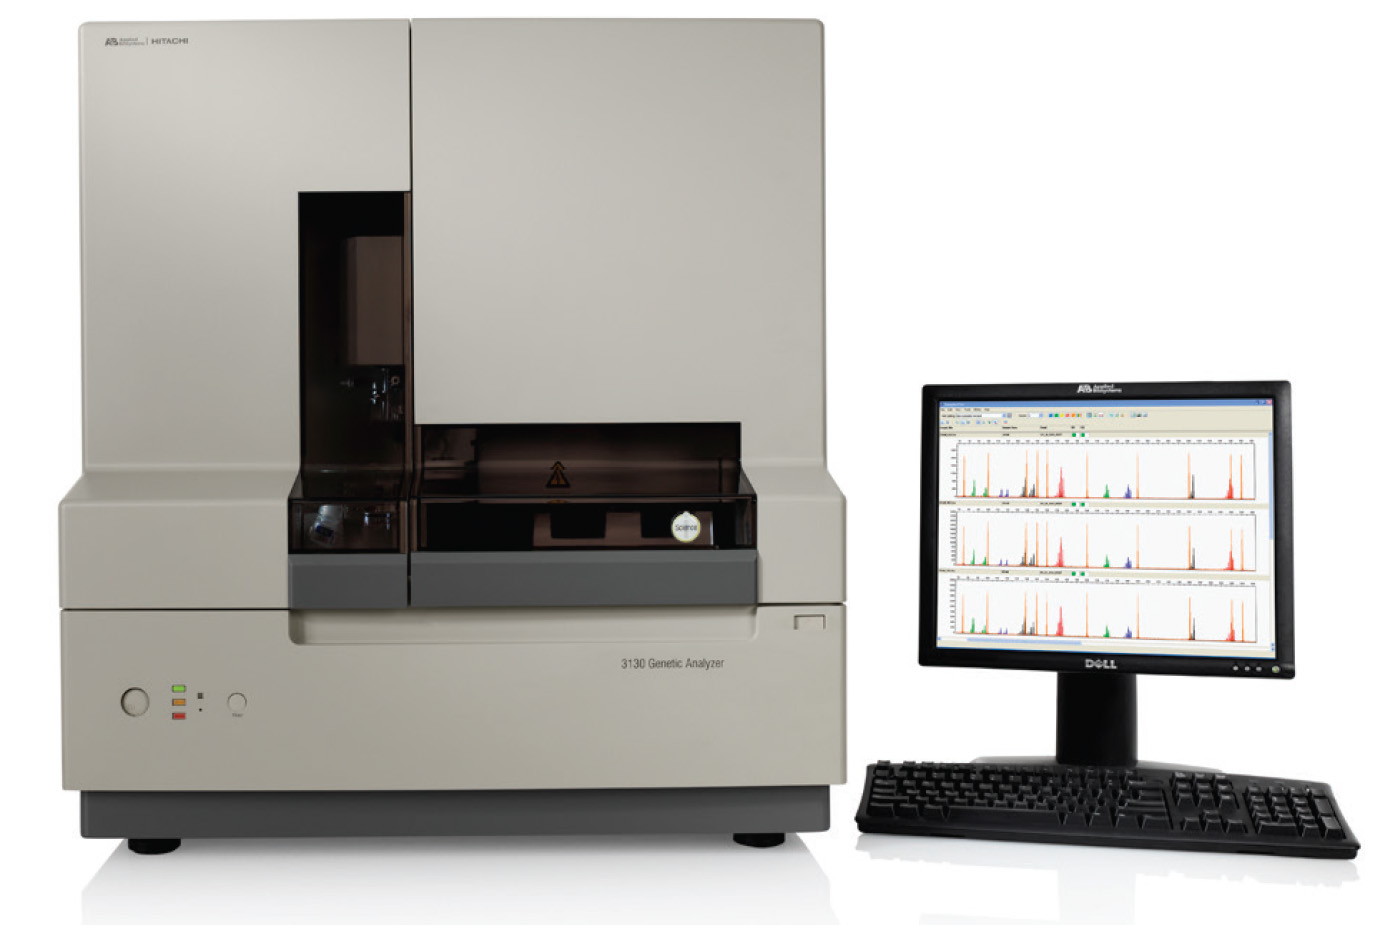 دستگاه Genetic Analyzer